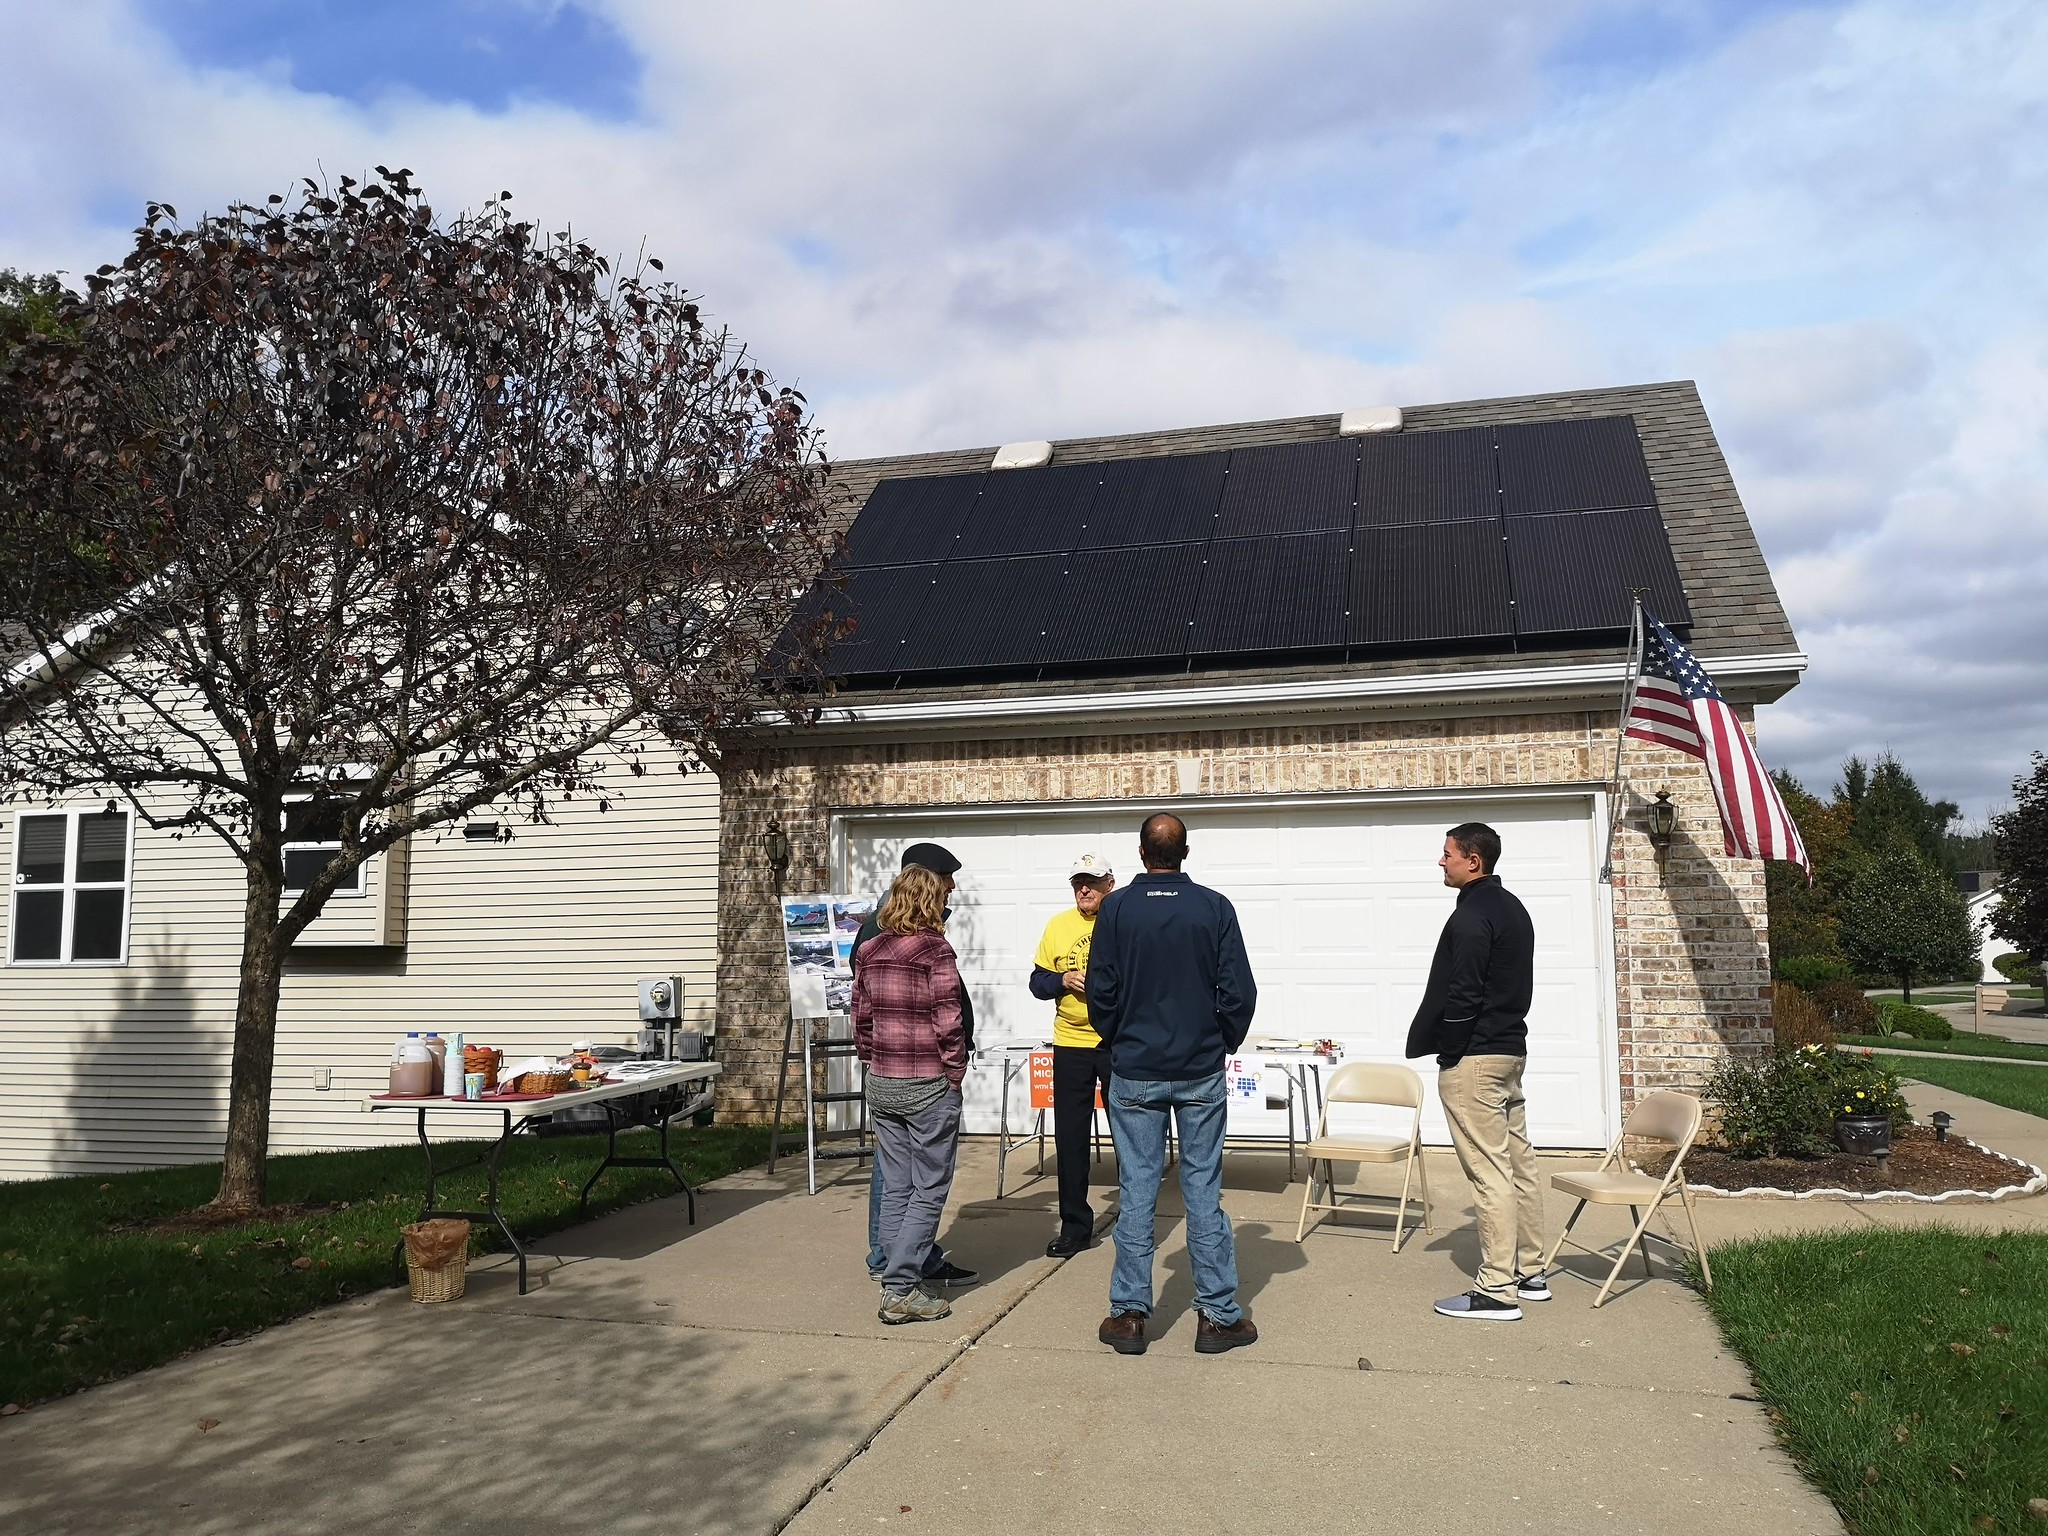 Solar Home Tour, Another Way To Reduce Carbon Footprint